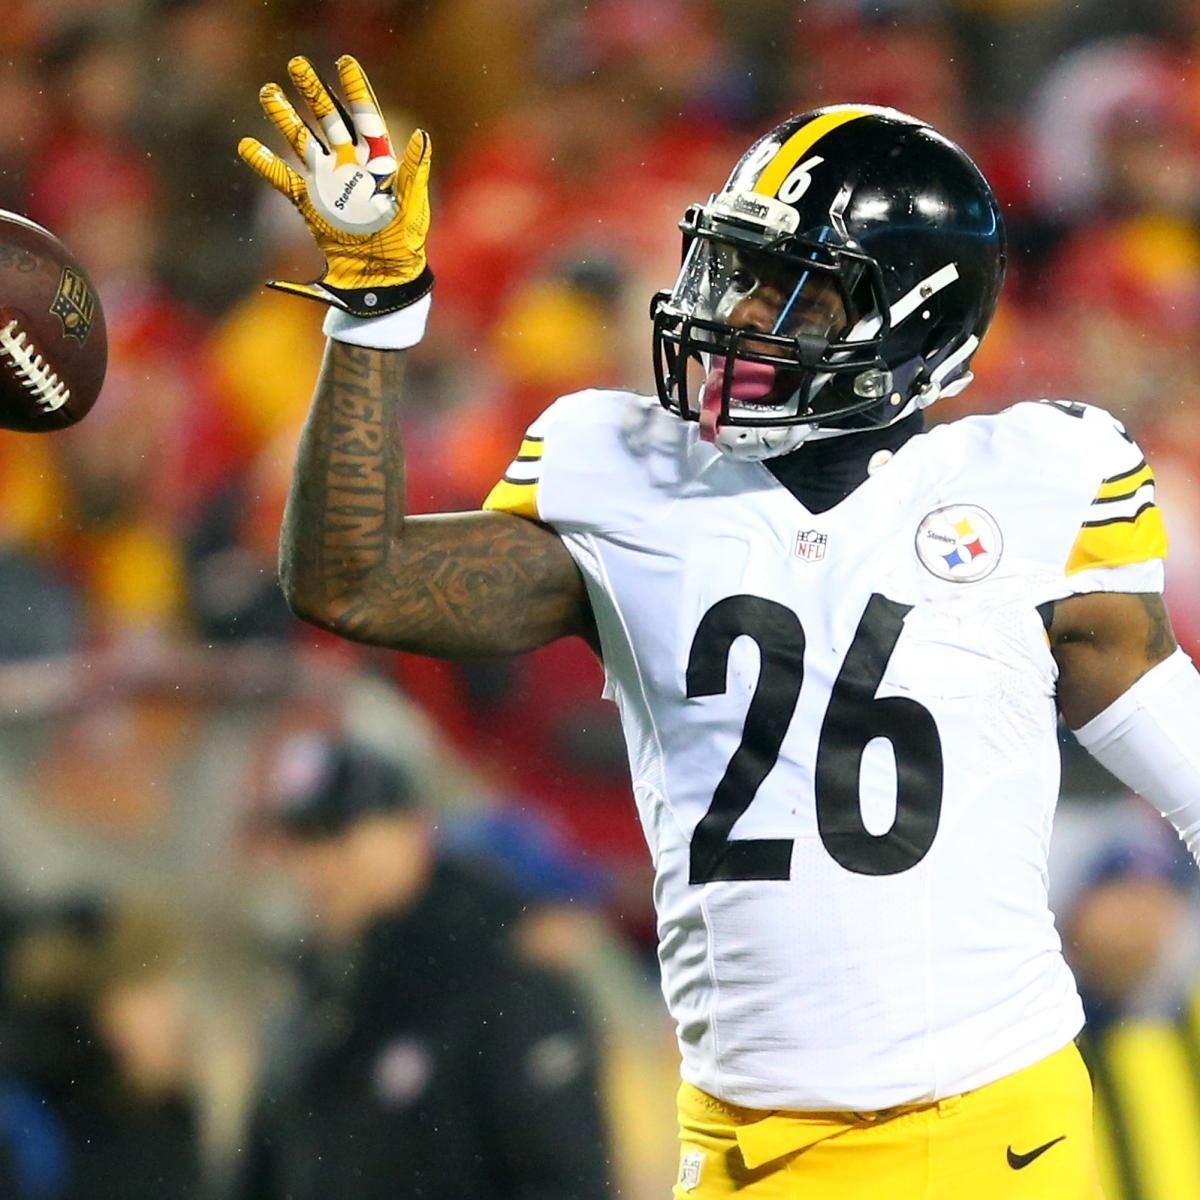 Le'Veon Bell Reports to Steelers After Holding out over